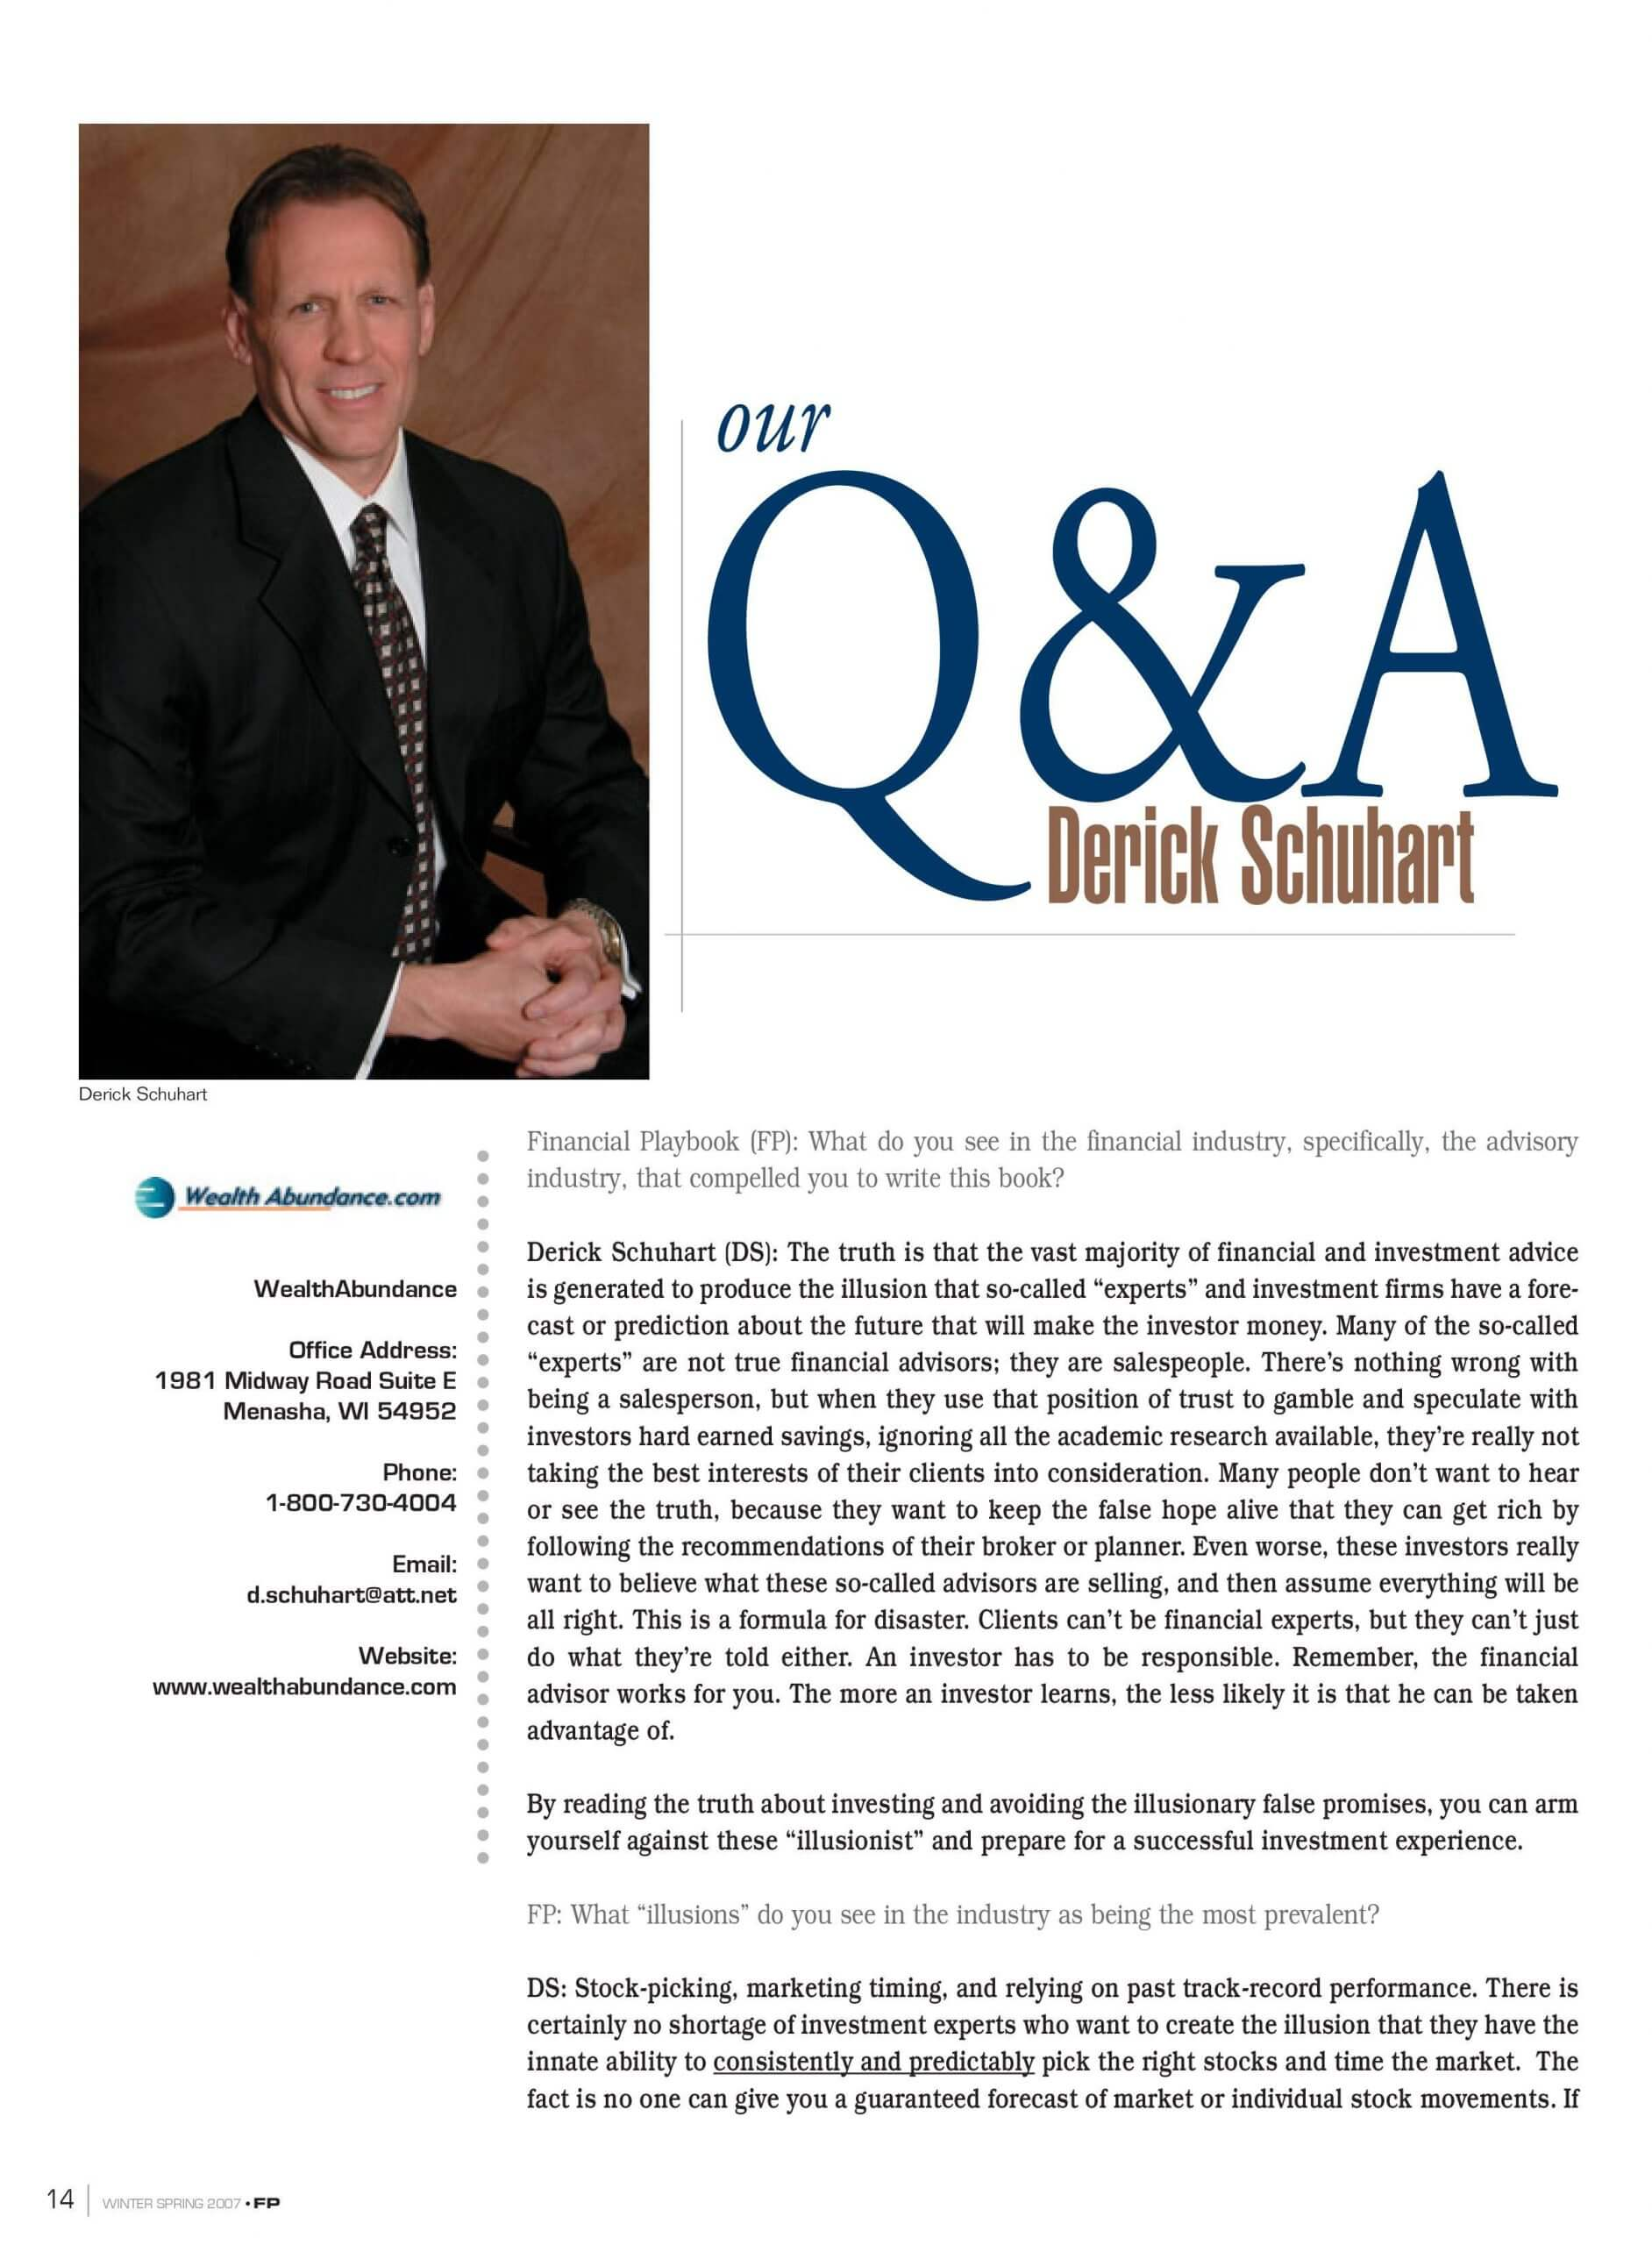 Q&A page 1